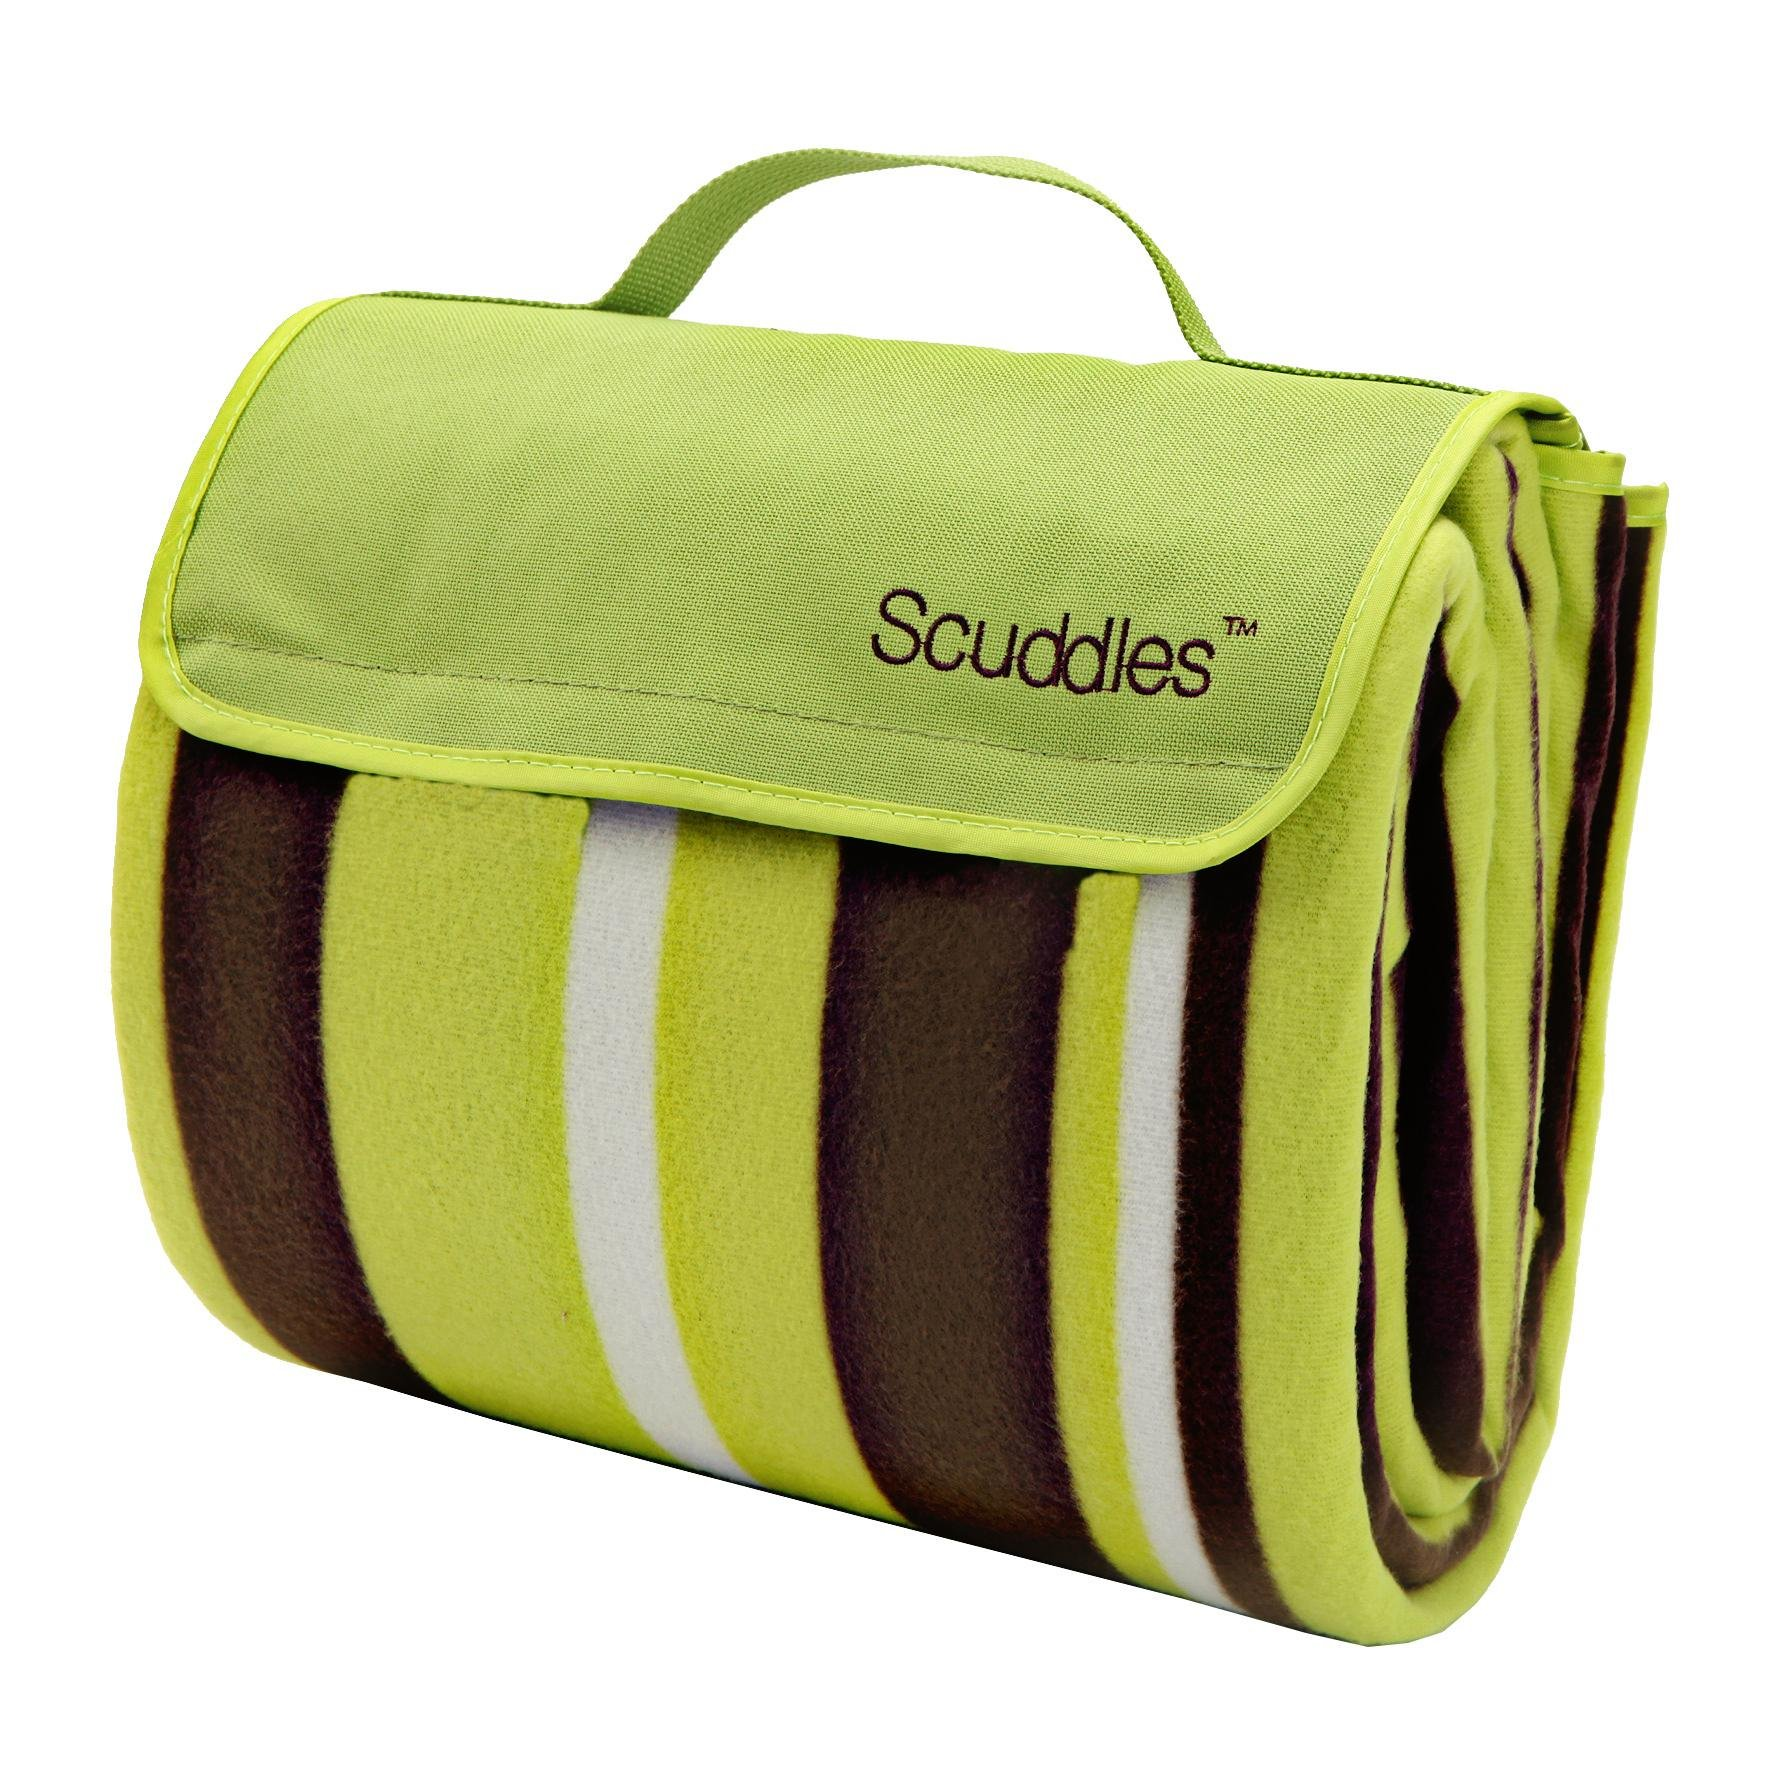 Scuddles Extra Large 60 X 79 INCH Picnic & Outdoor Blanket Dual Layers For Outdoor Water-Resistant Handy Mat Tote Spring Summer Striped Great for the Beach,Camping on Grass Waterproof by scuddles